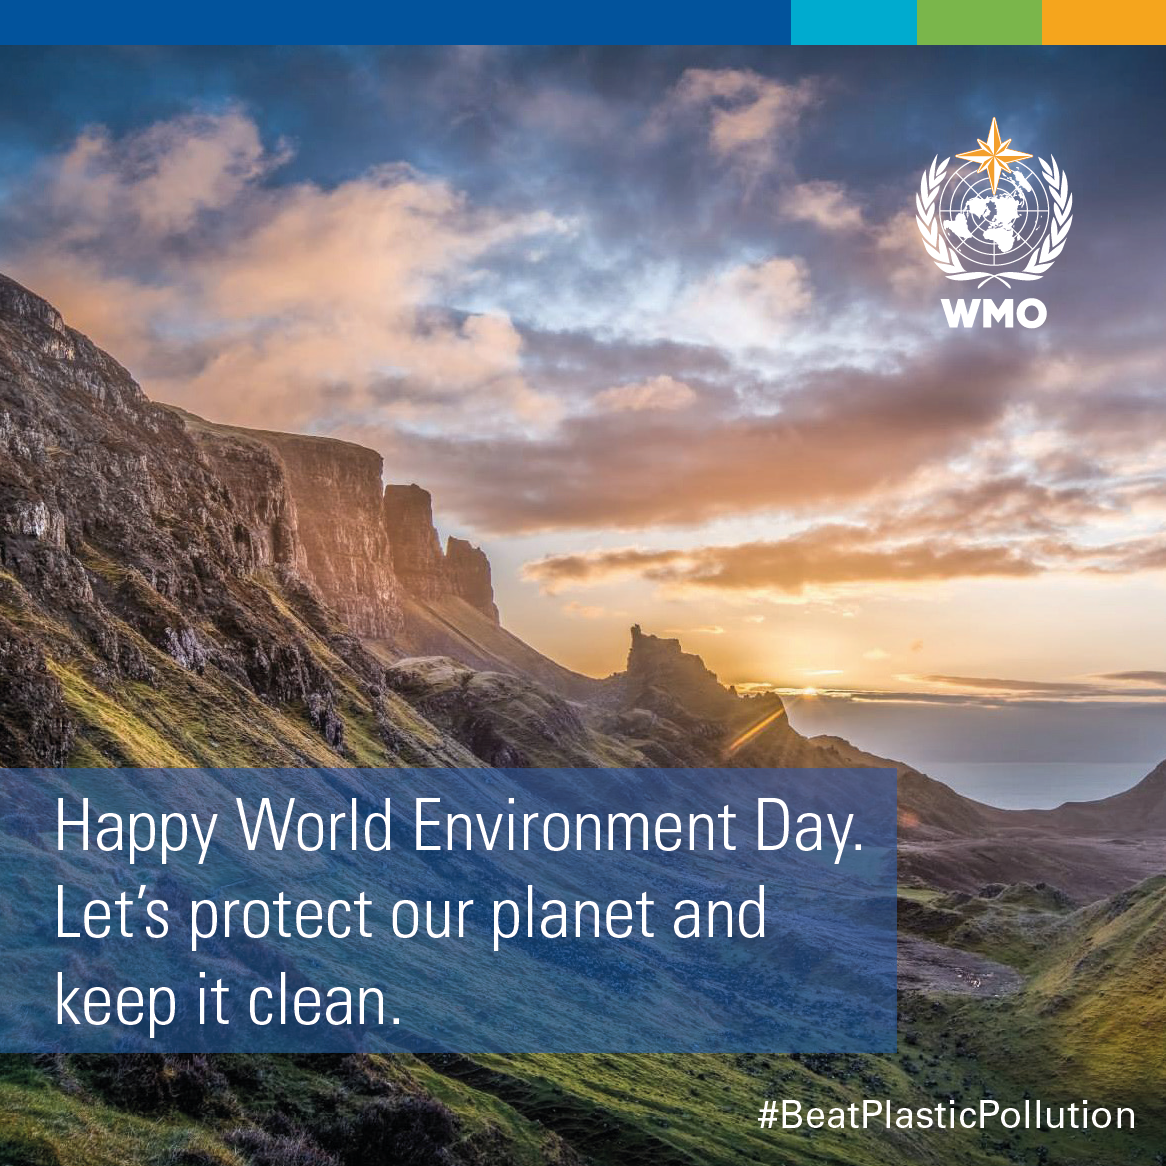 WMO_World Environment Day 2018